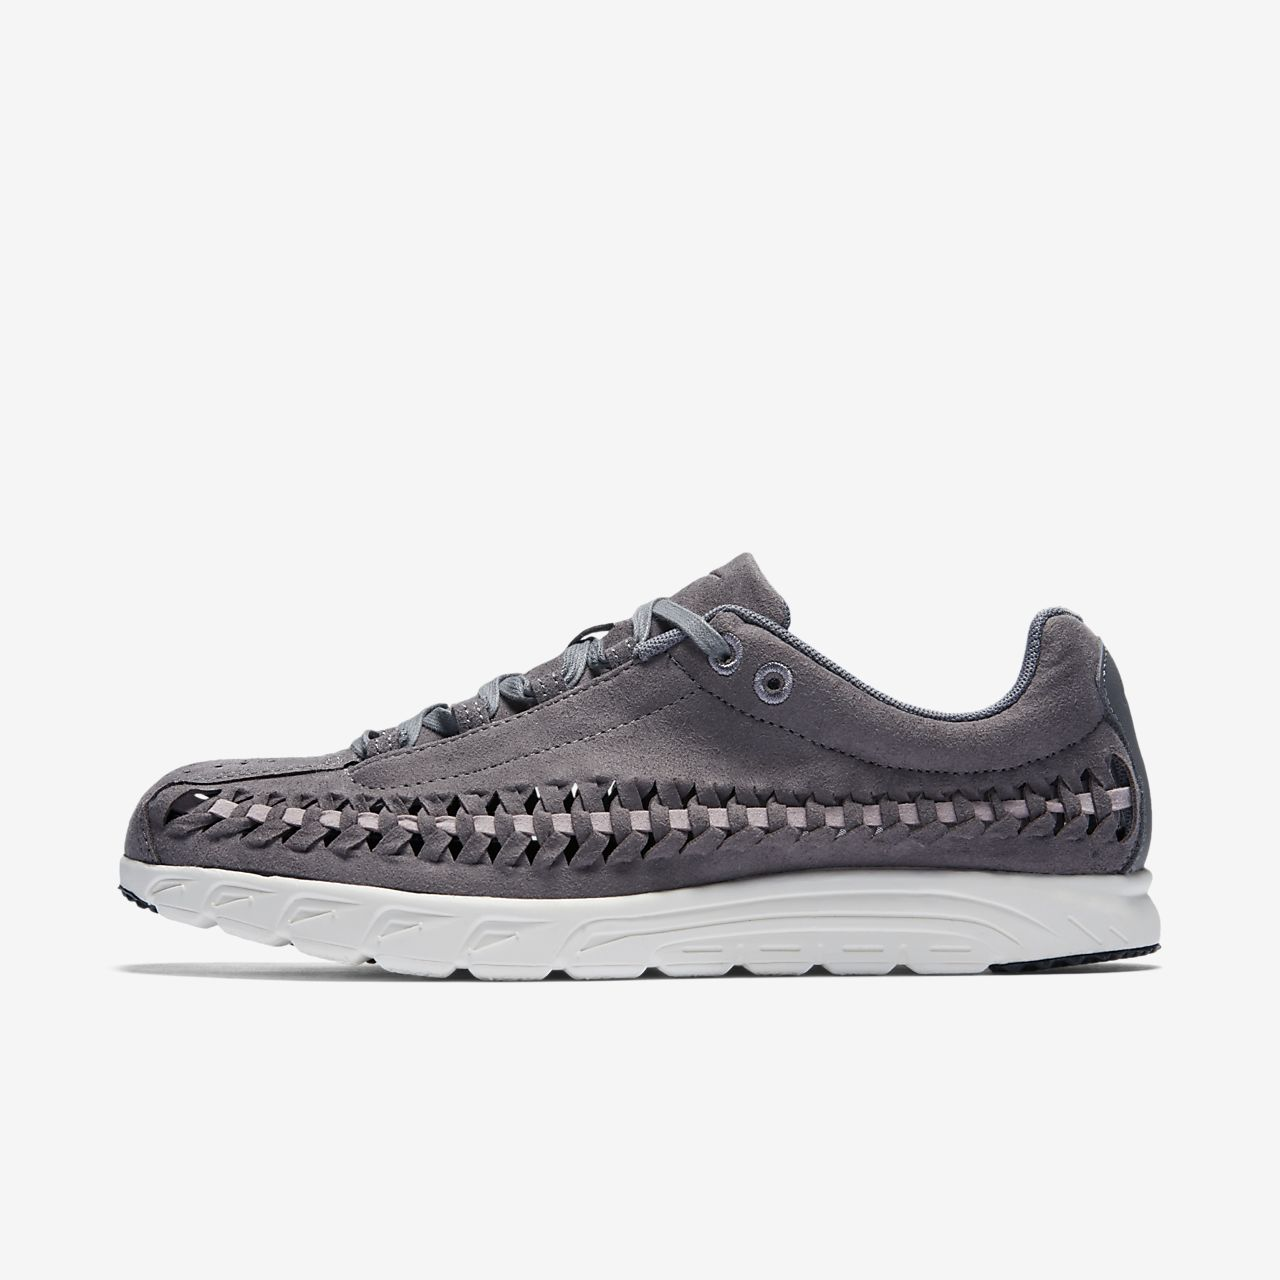 Nike Mayfly woven sneakers 0dY2Yih9Nd